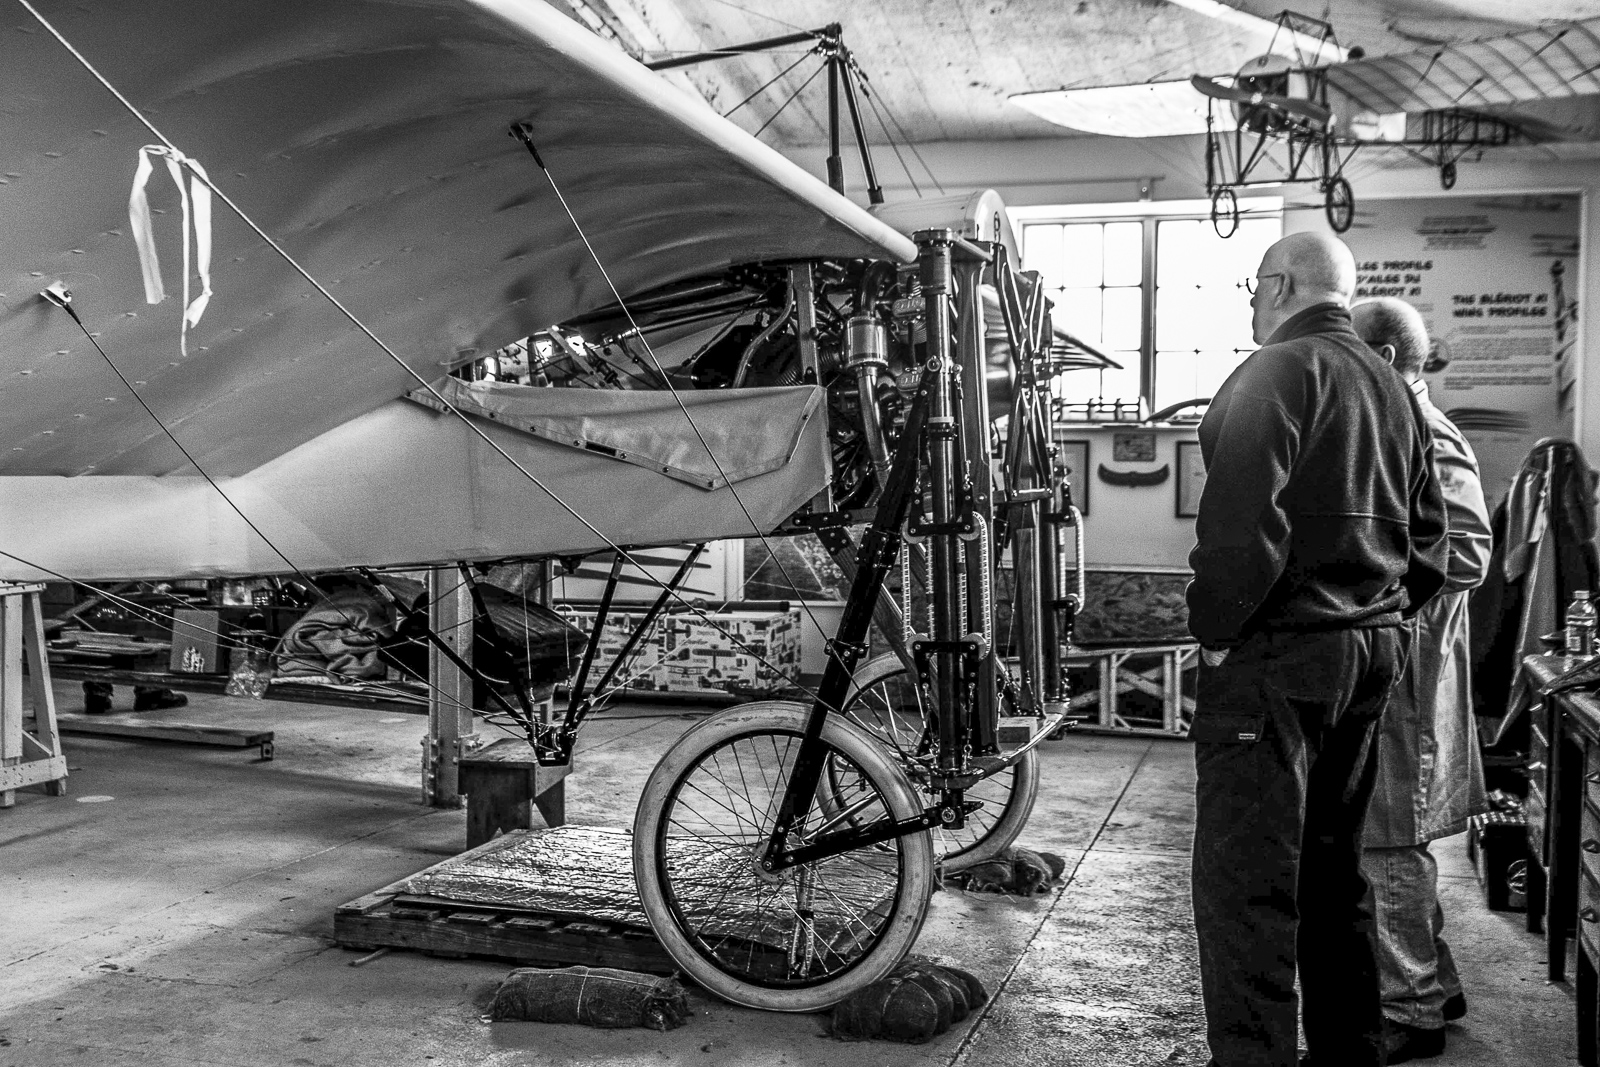 The Bleriot under construction. (photo via Benoit deMulder)